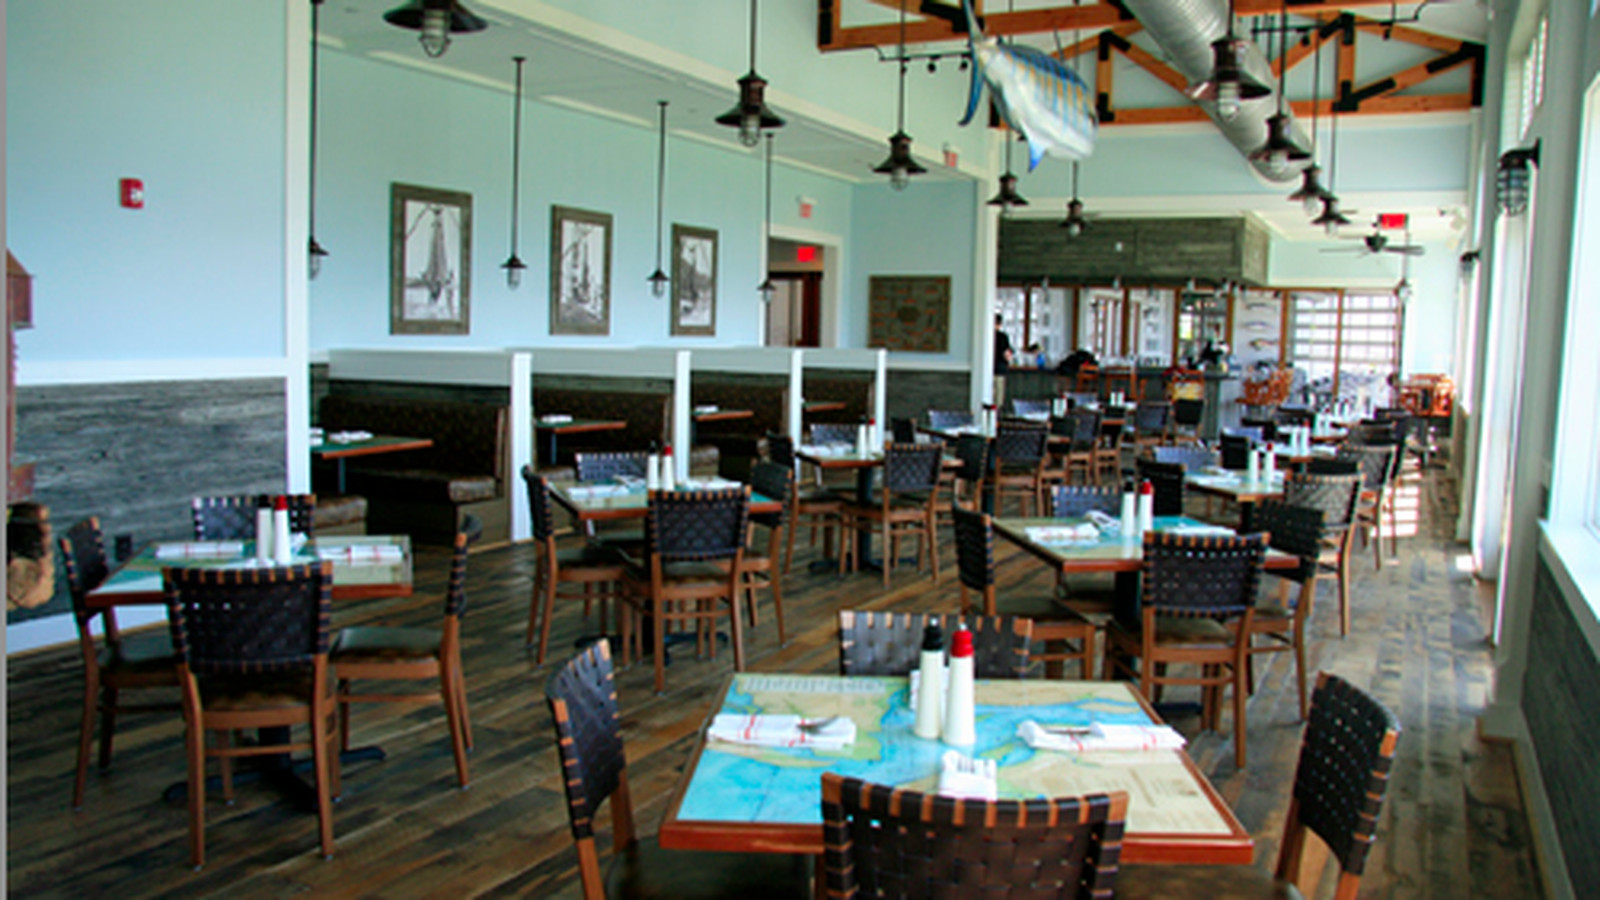 Check out charleston harbor fish house eater charleston for Boston fish house menu